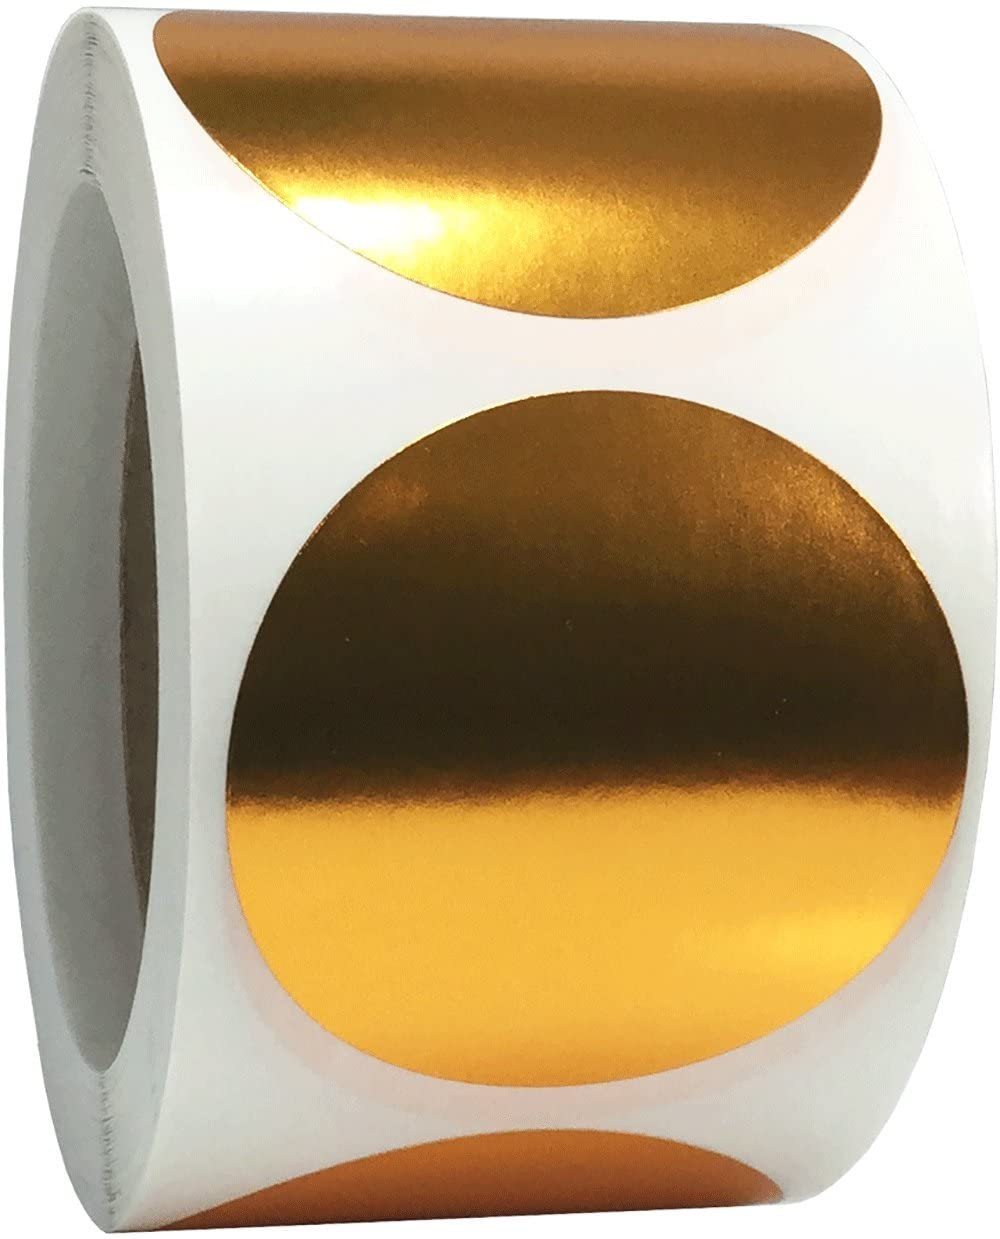 Metallic Bronze Color Coding Labels for Organizing Inventory 2.5 Inch Round Circle Dots 500 Total Adhesive Stickers On A Roll